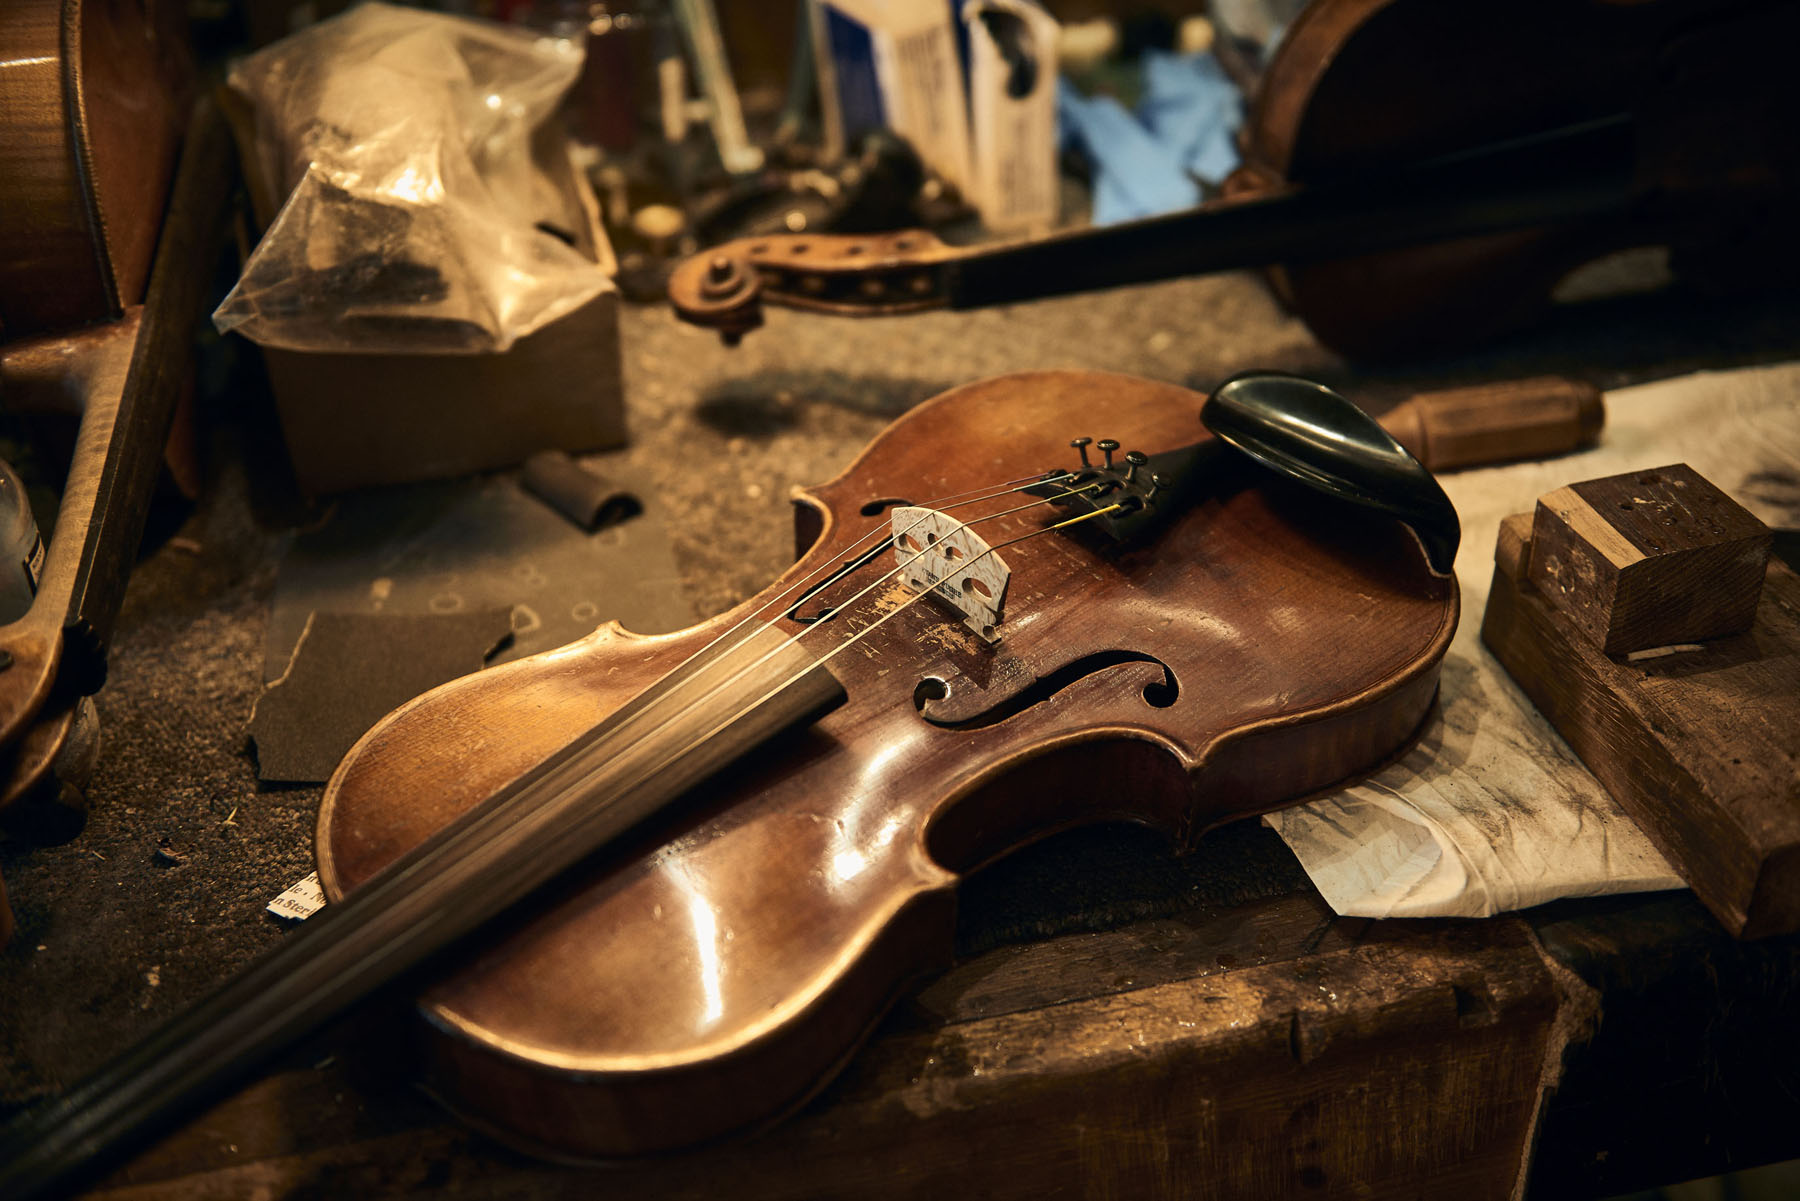 Violin on a worktop under repair